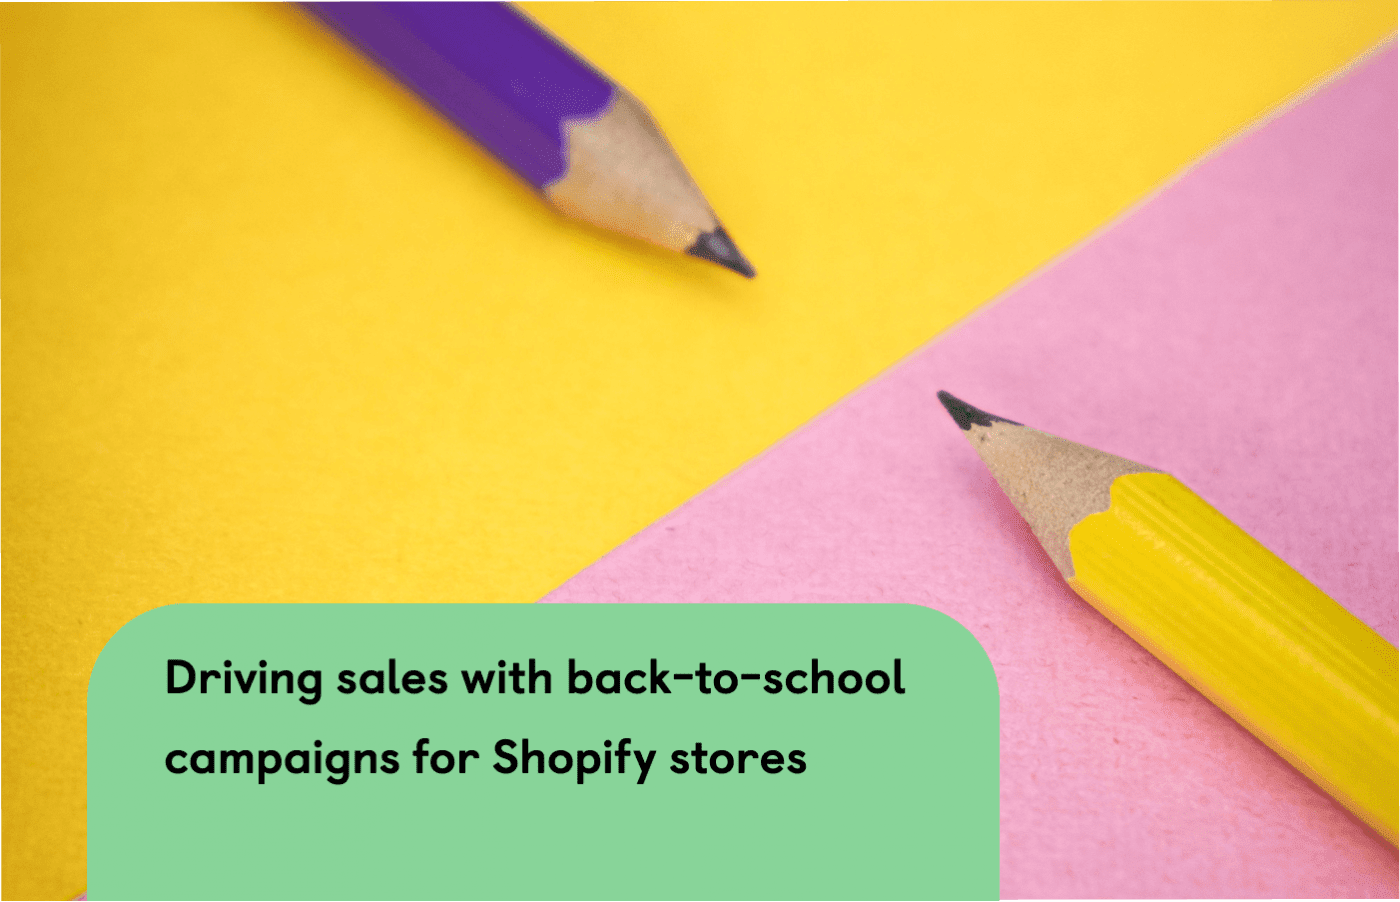 How to drive sales with back-to-school campaigns for Shopify stores